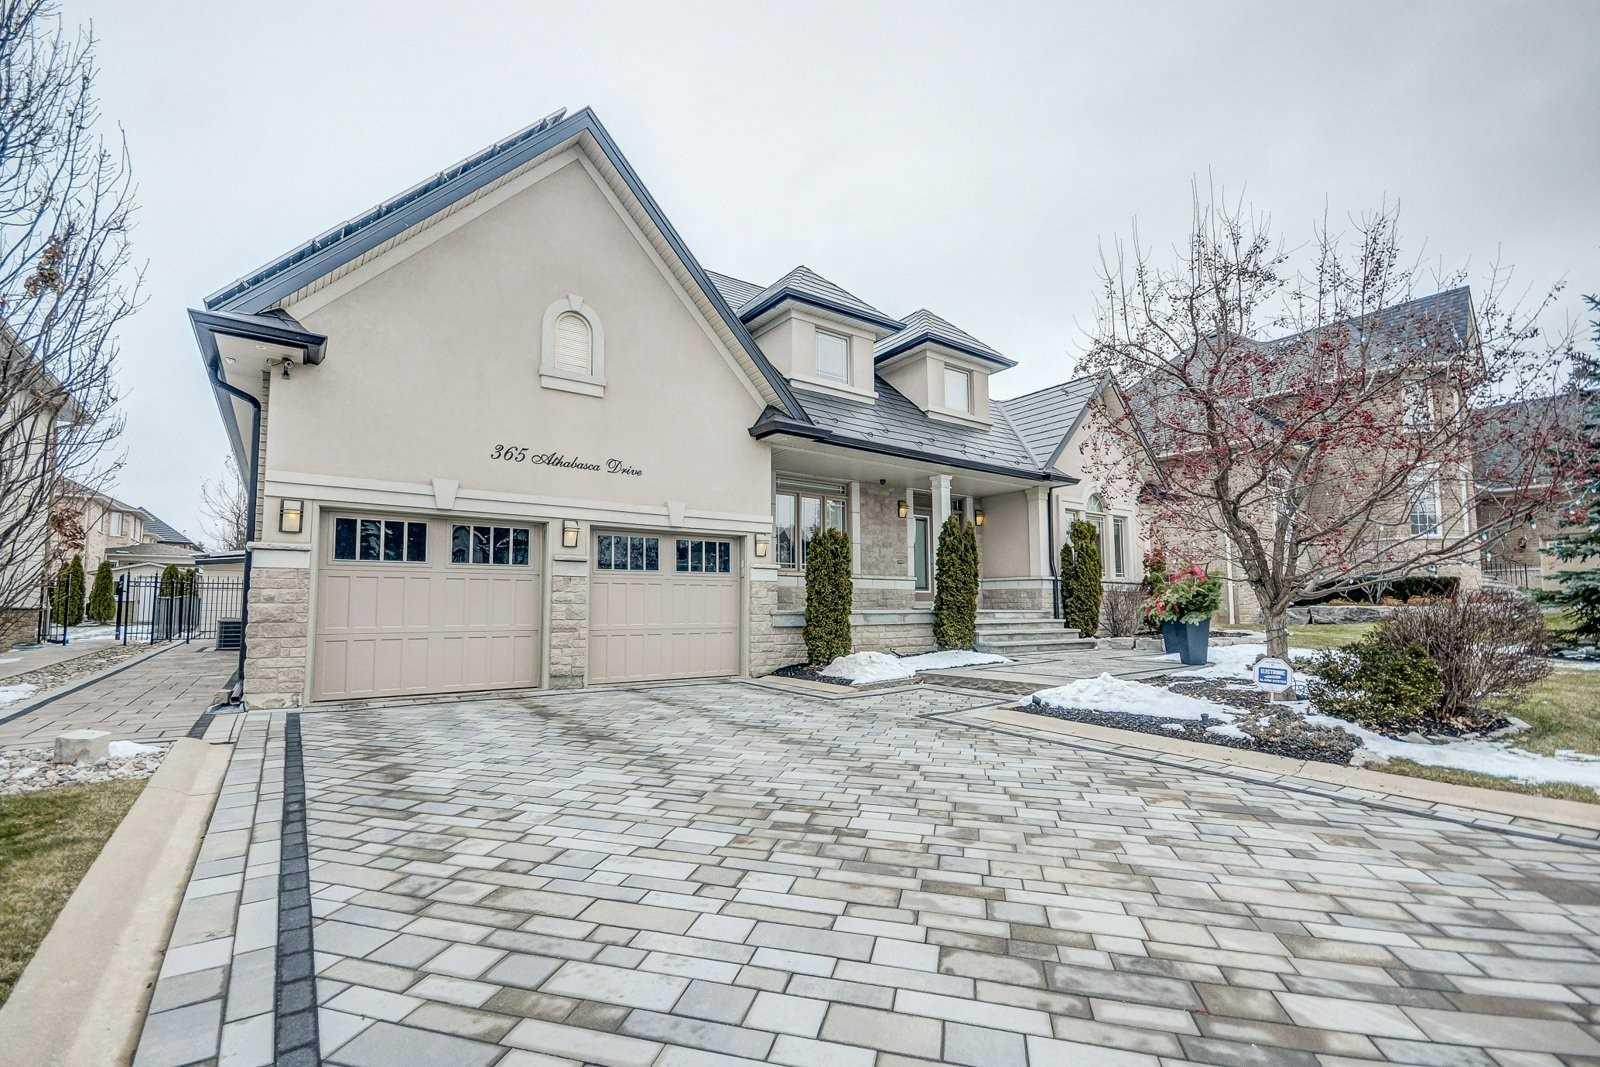 365 Athabasca Dr